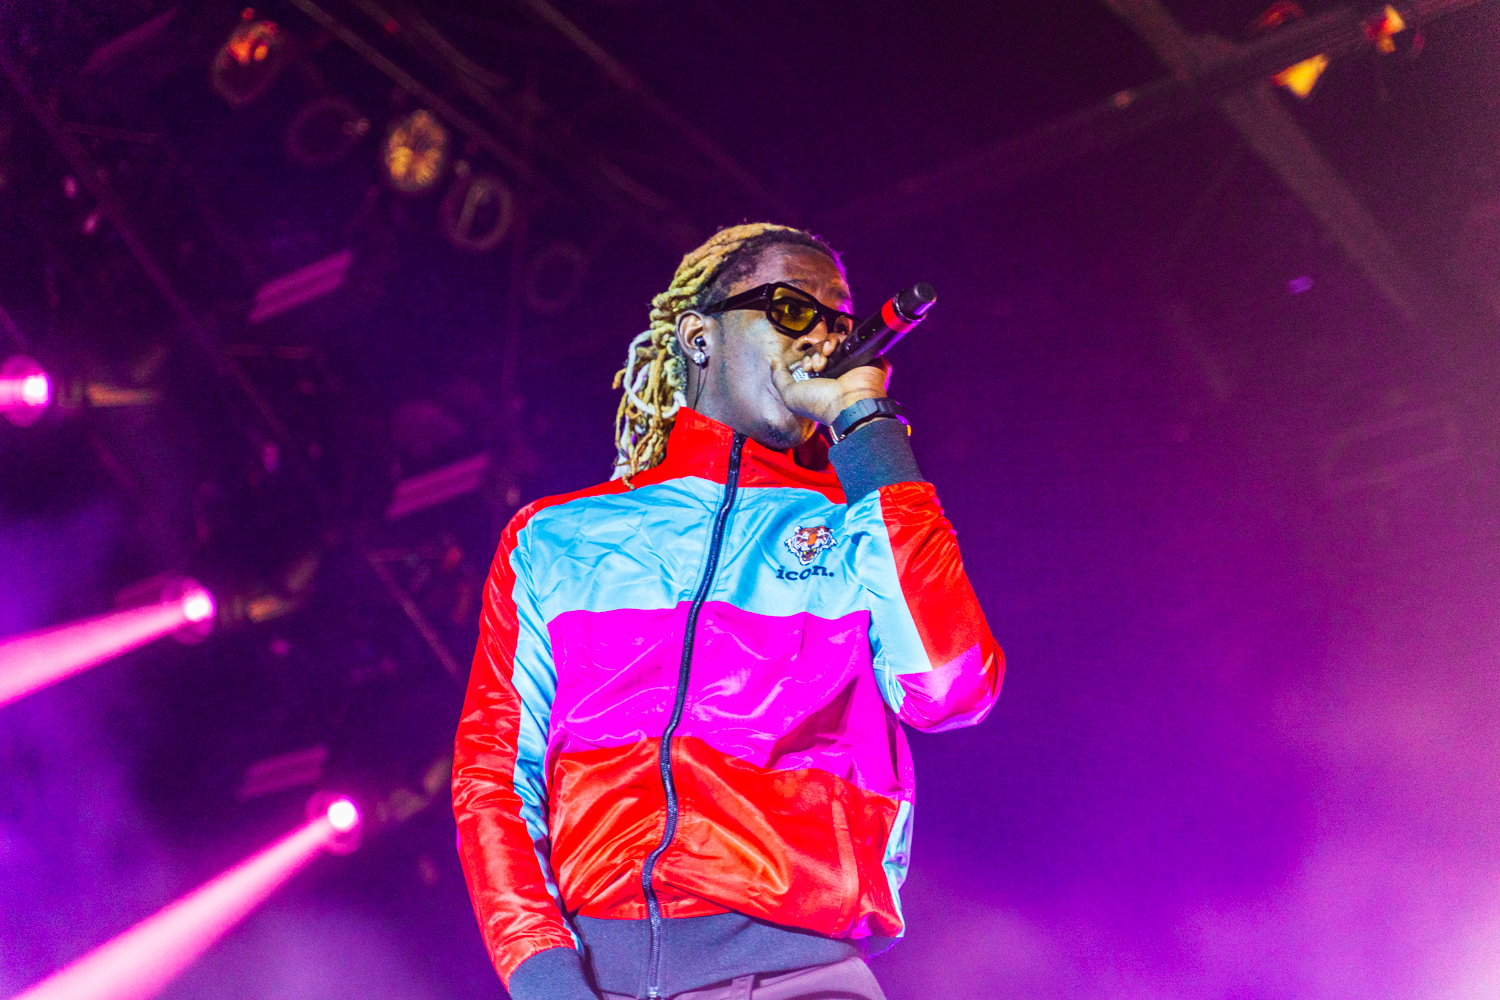 303 Magazine, 303 Music, Young Thug, Justin Bieber Big Tour, Young Thug Denver, Young Thug 2019 Tour, Young Thug Concert, Young Thug Denver Concert, The Slimestas, RJmrLA, Killy, Flipp Dinero, Fillmore Auditorium, Josie Russell, Daniel Amimoto